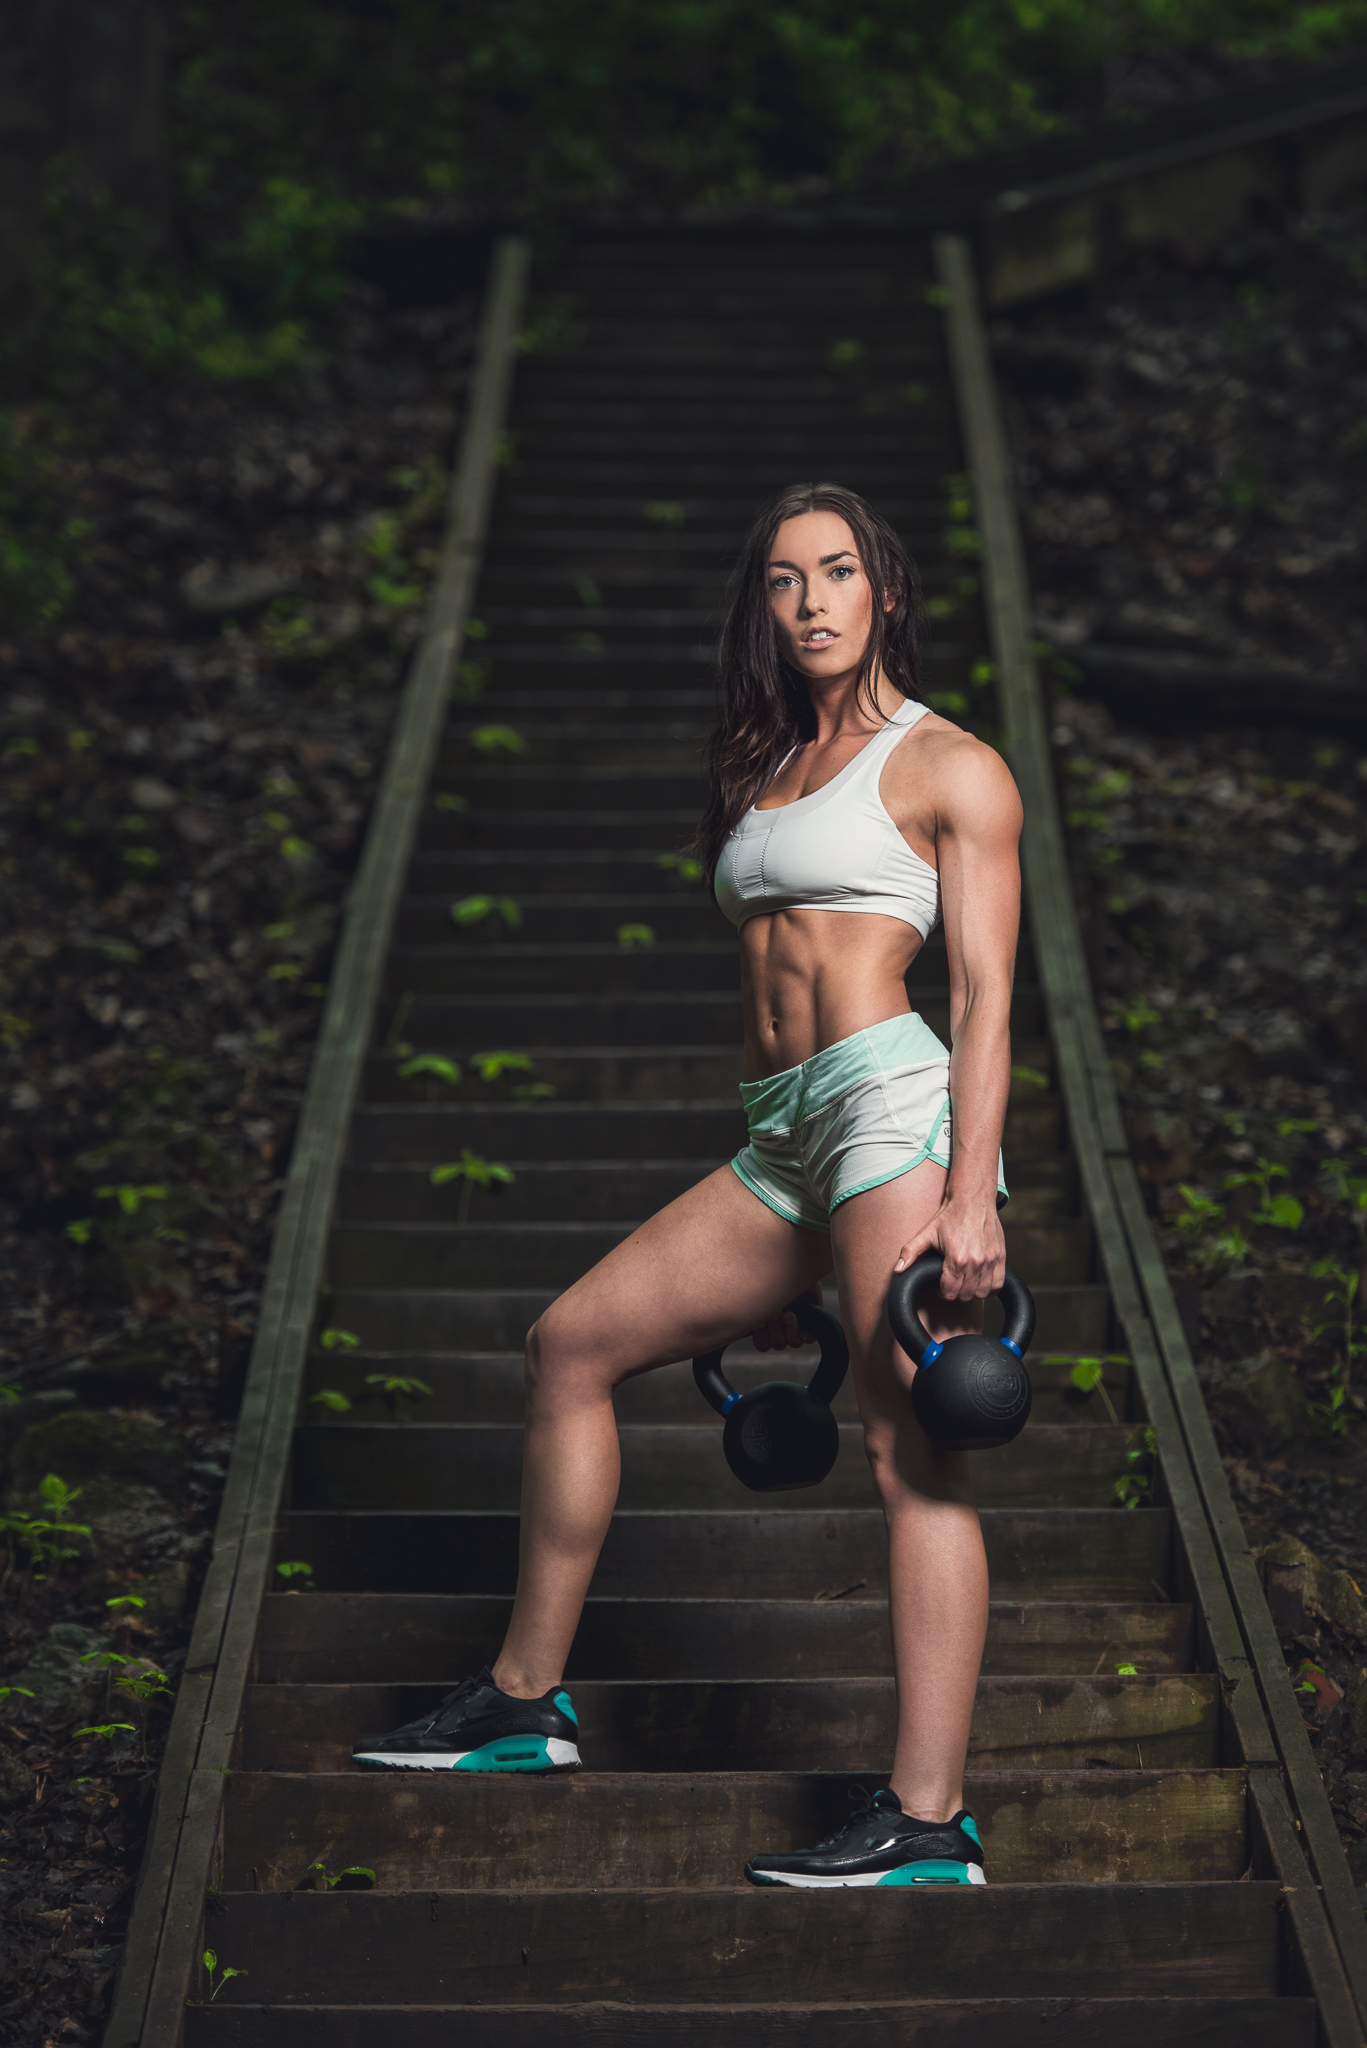 Hamilton Fitness Photographer - Outdoor Kettle Bell Photoshoot 001.JPG